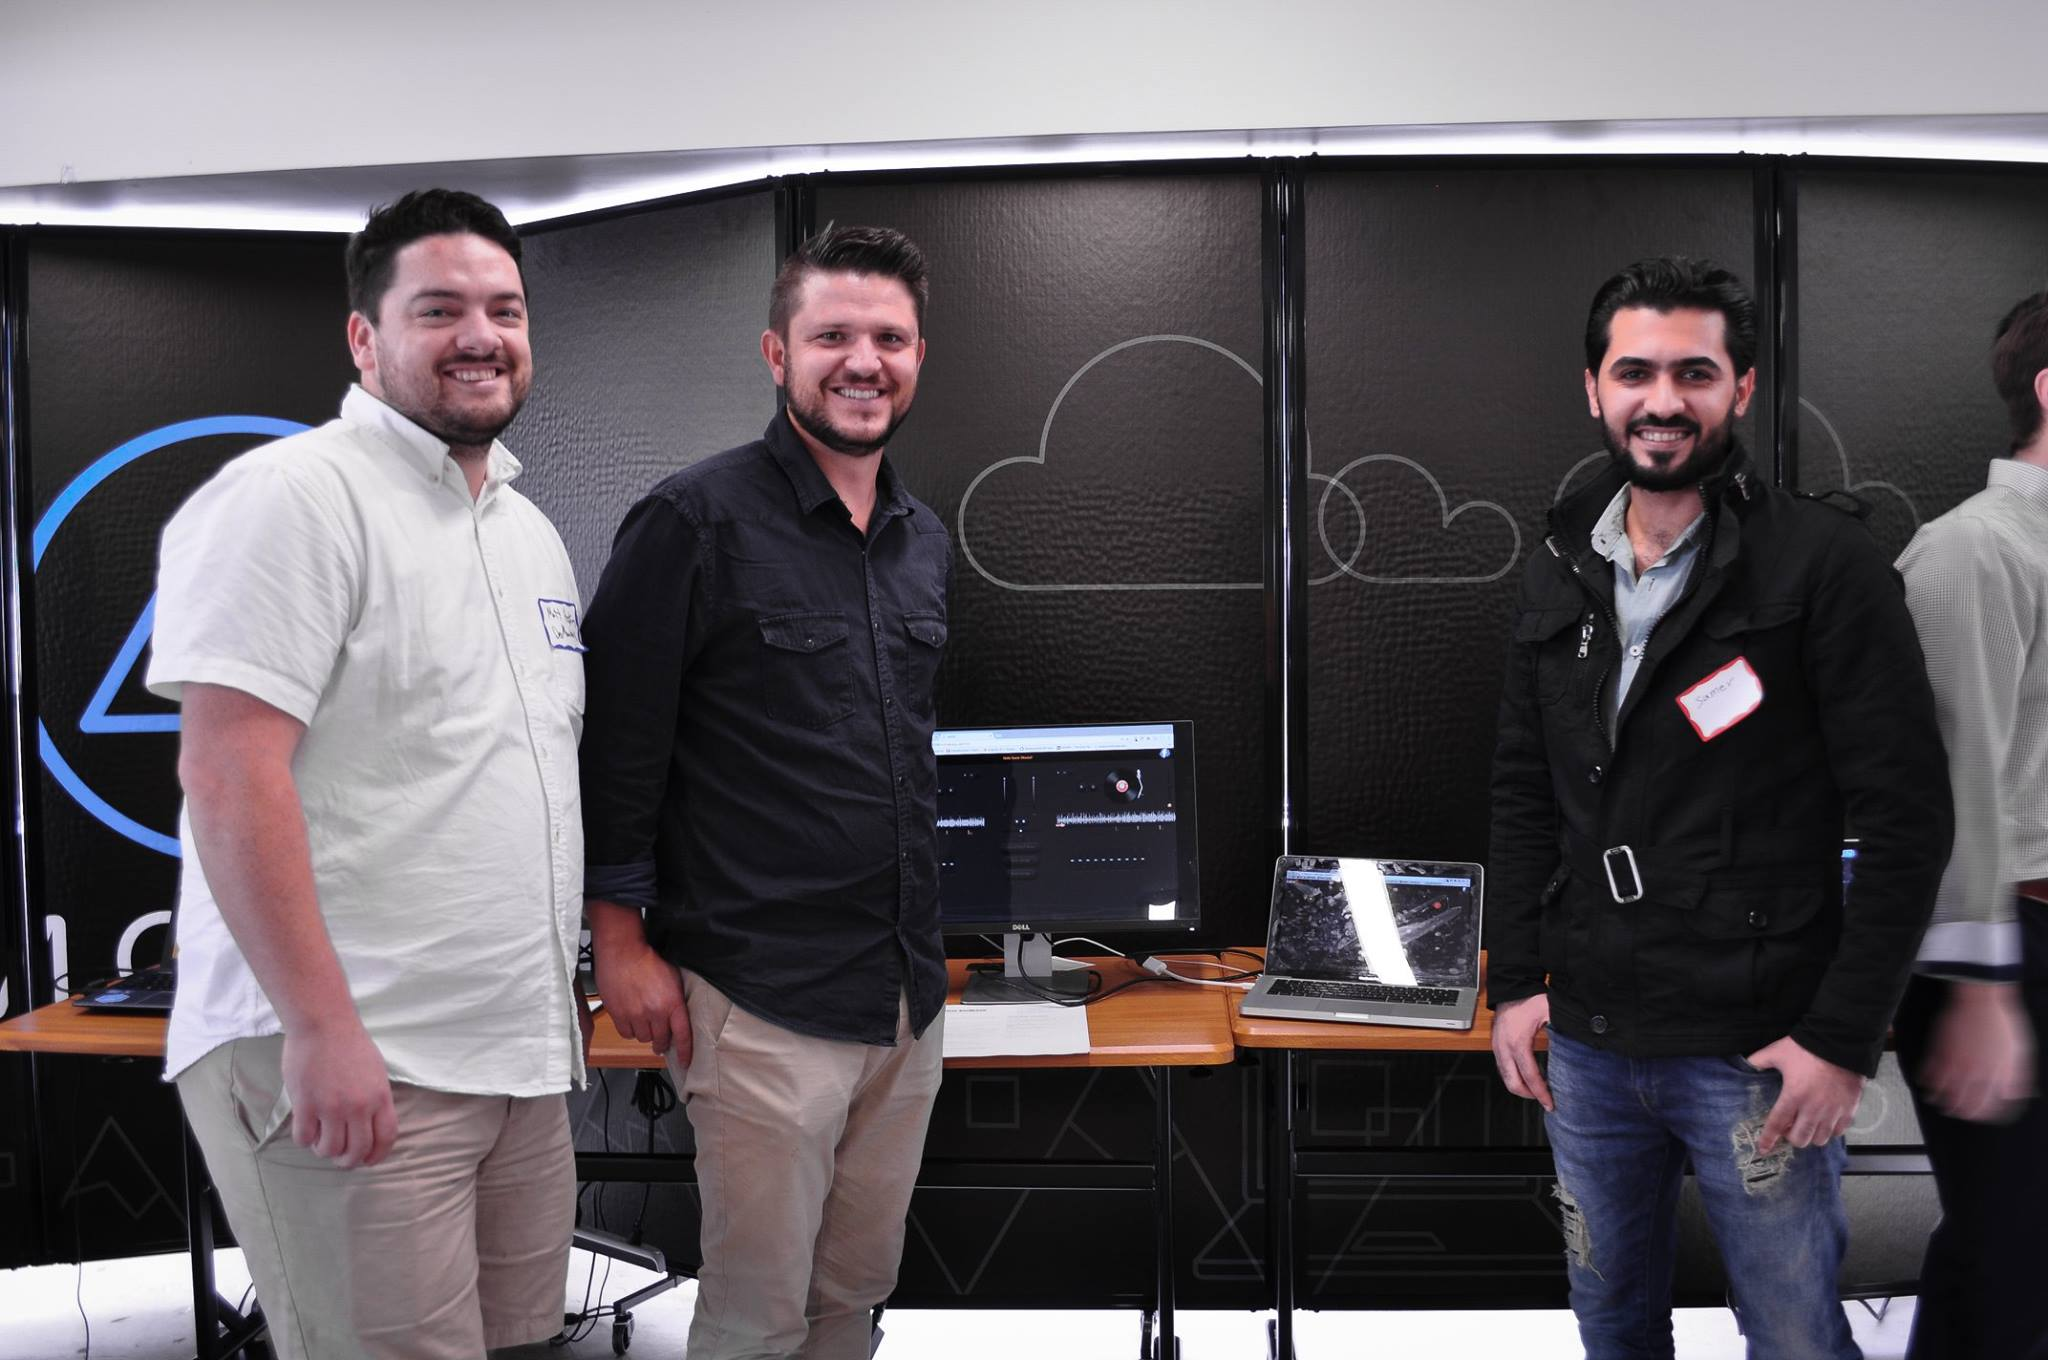 Samer (right) is an RST client who earned a three-month scholarship to study code  through  DevMountain with the help of RST Employment Services.